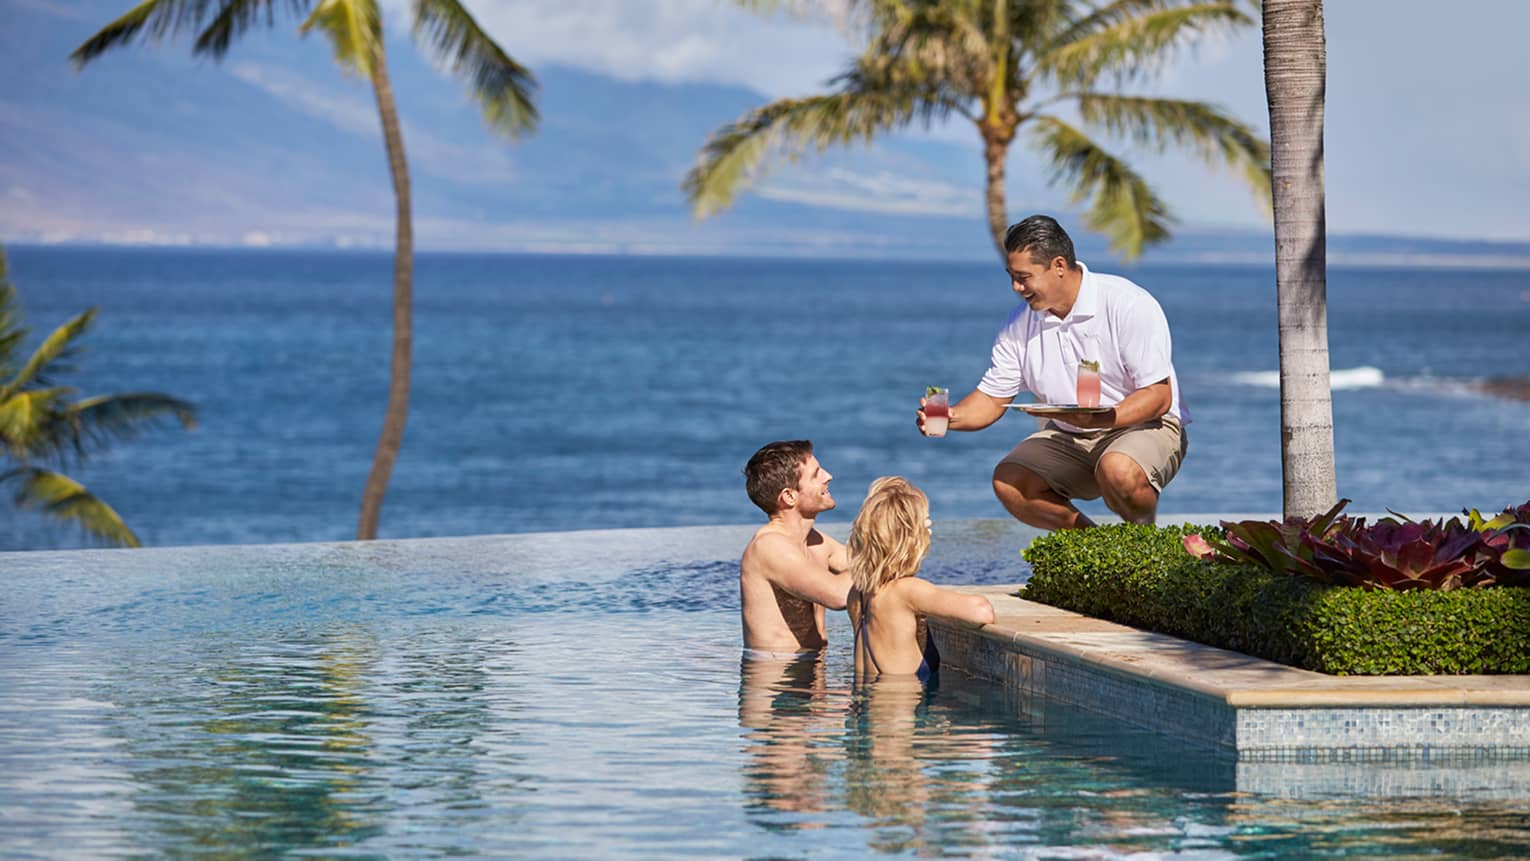 Server in white uniform with tray passes a cocktail to man and woman at edge of infinity swimming pool